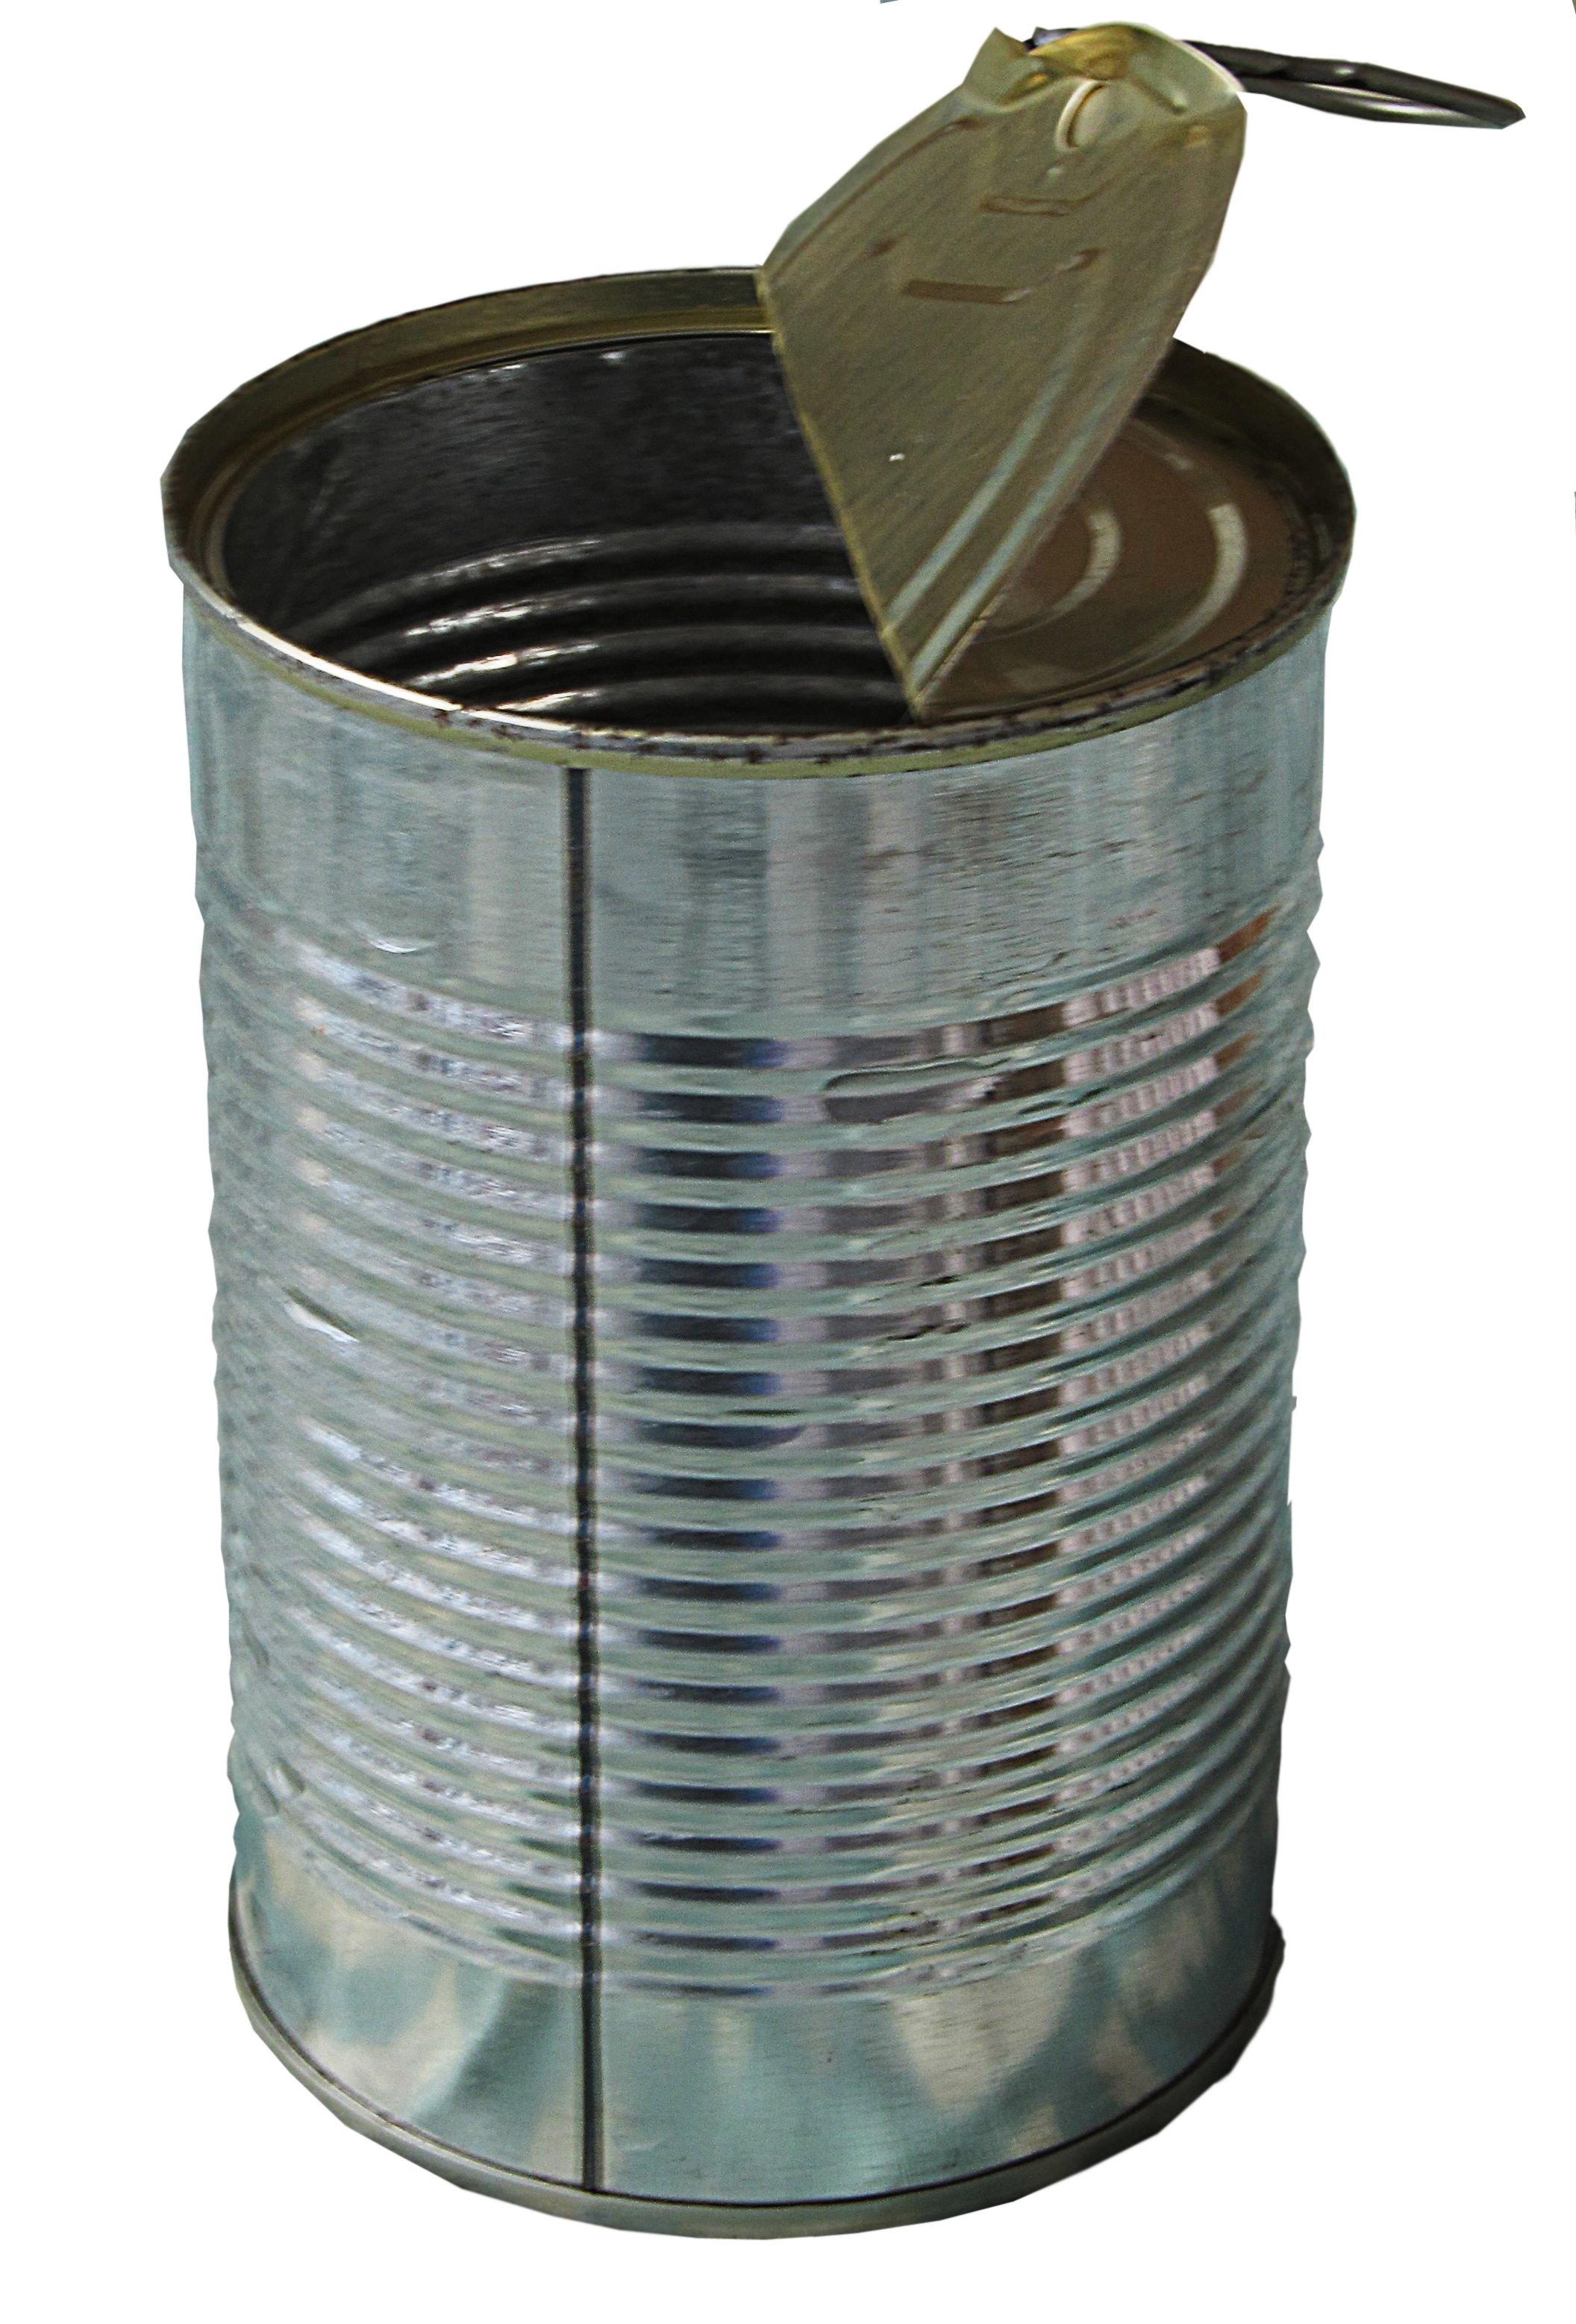 tin can png by amalus d k qd free images at